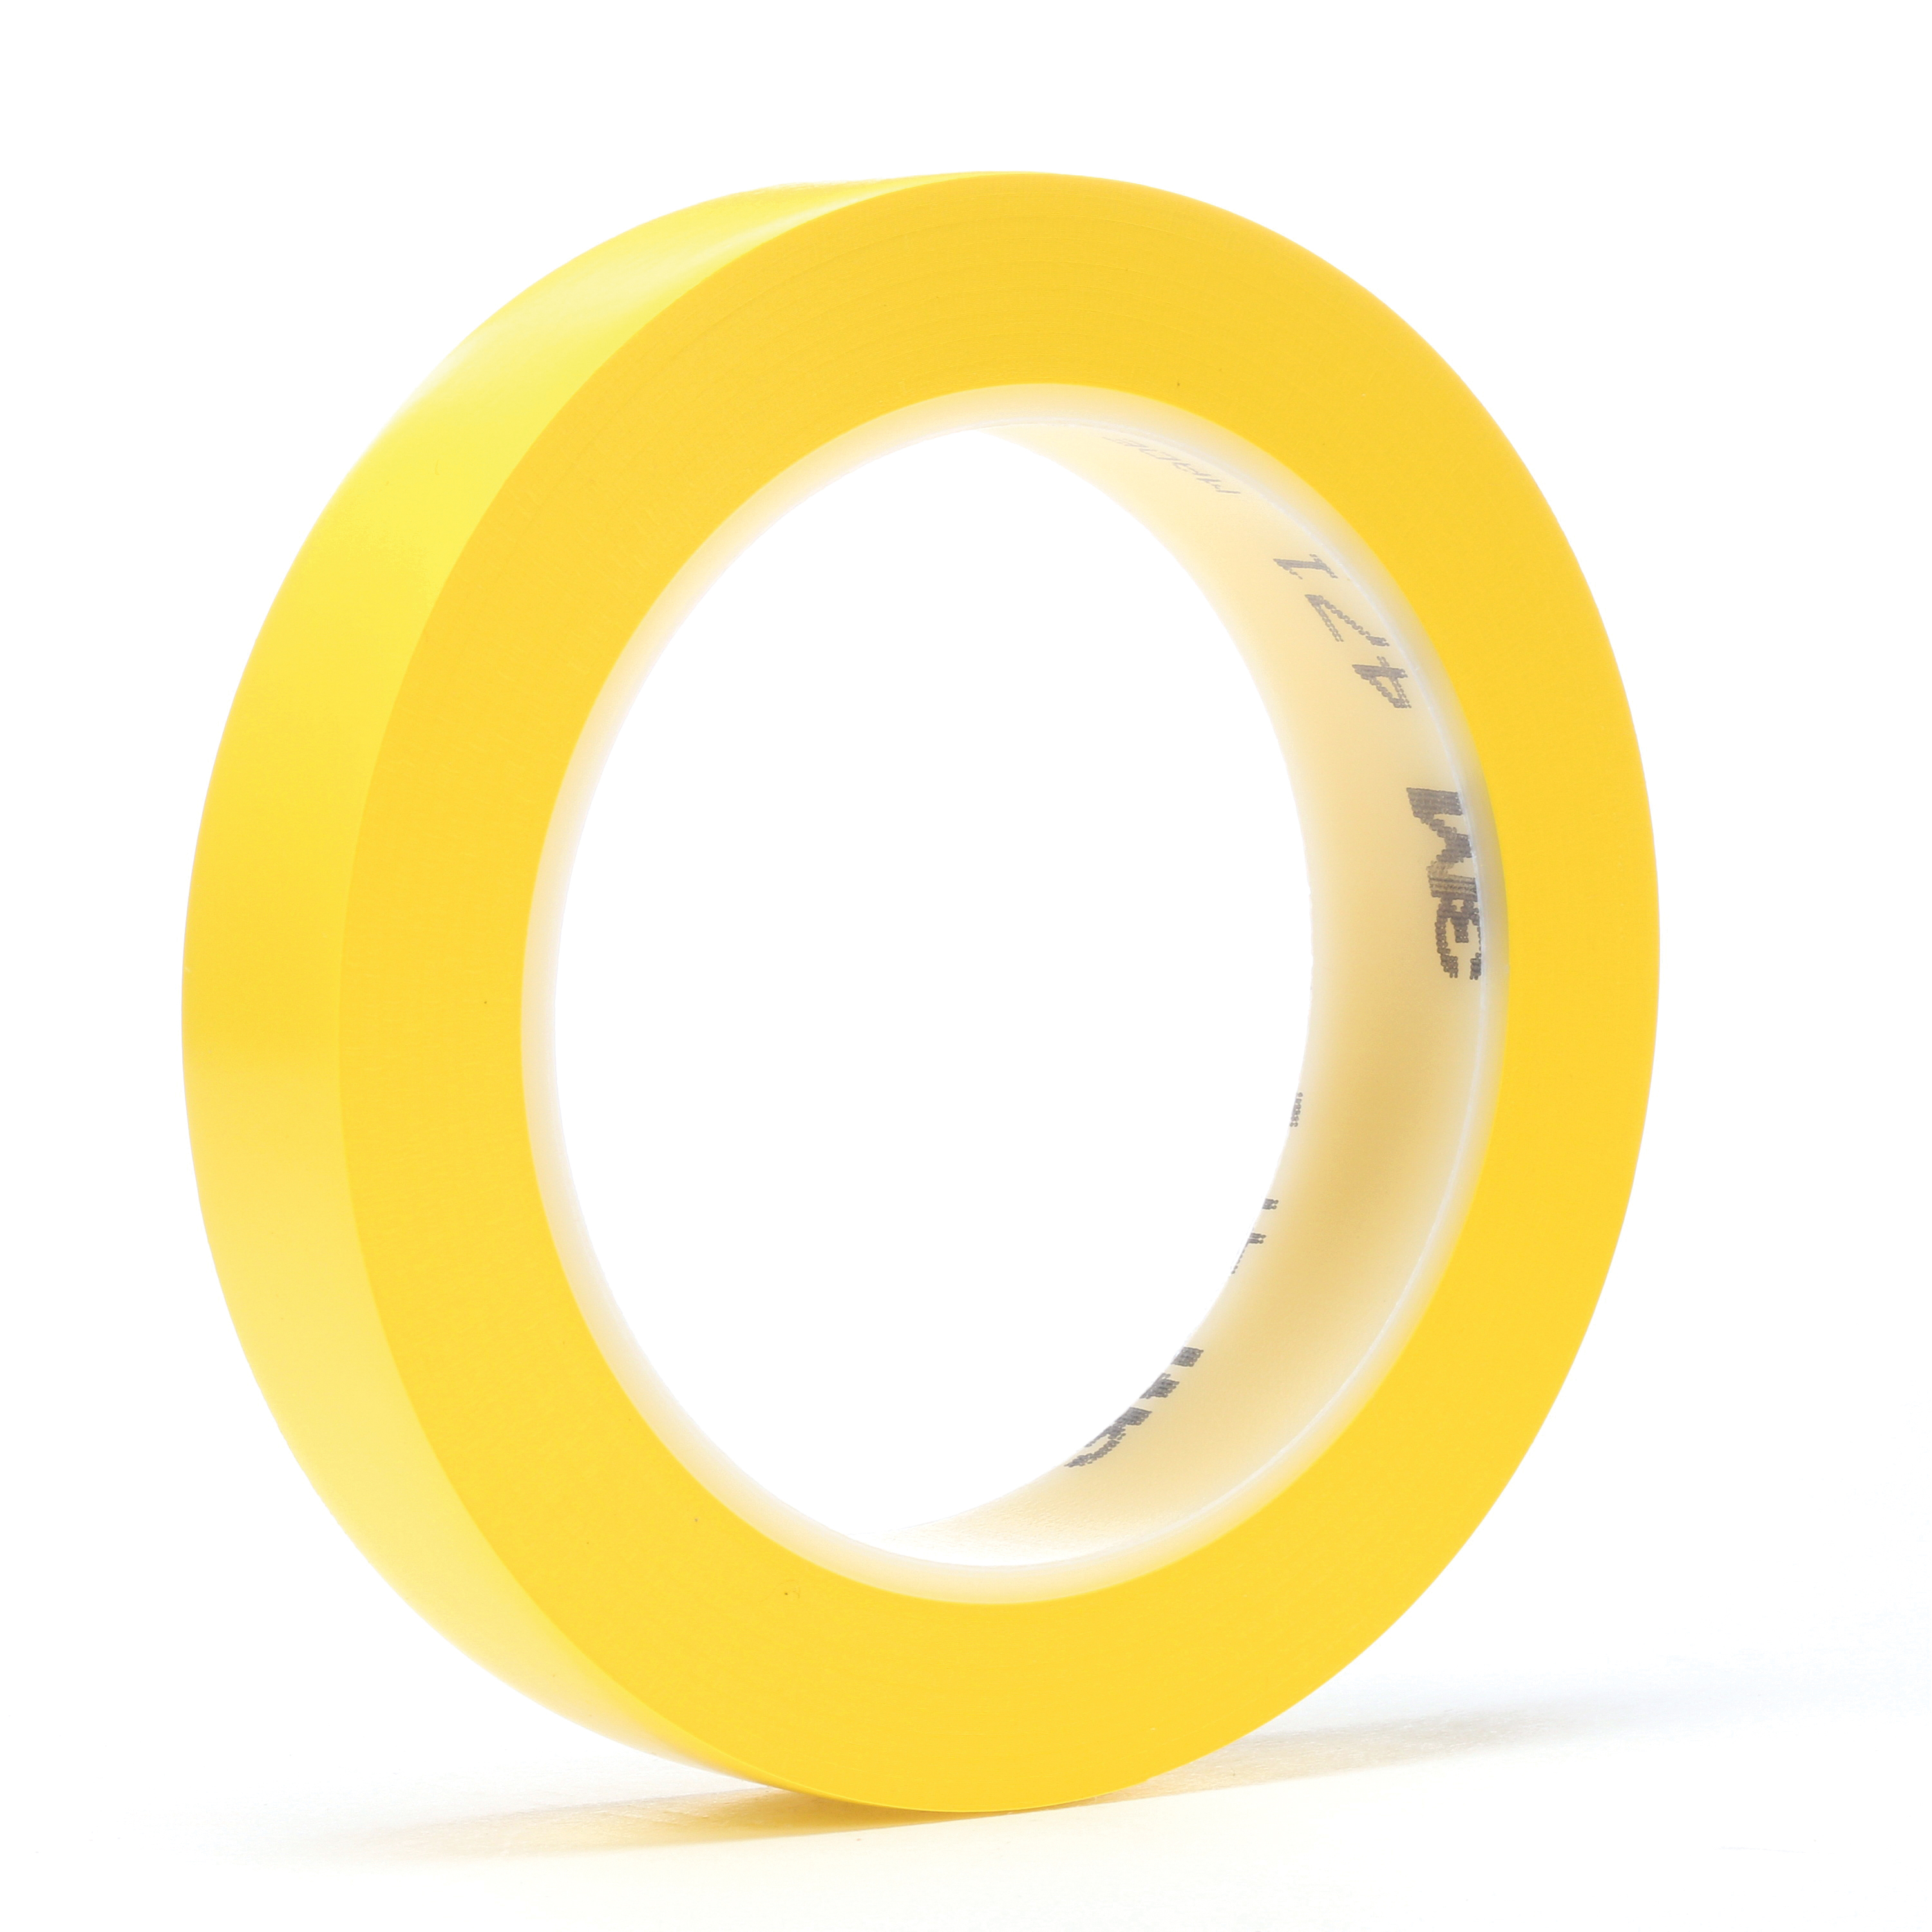 3M™ 021200-03126 High Performance Vinyl Tape, 36 yd L x 1/2 in W, 5.2 mil THK, Rubber Adhesive, Vinyl Backing, Yellow